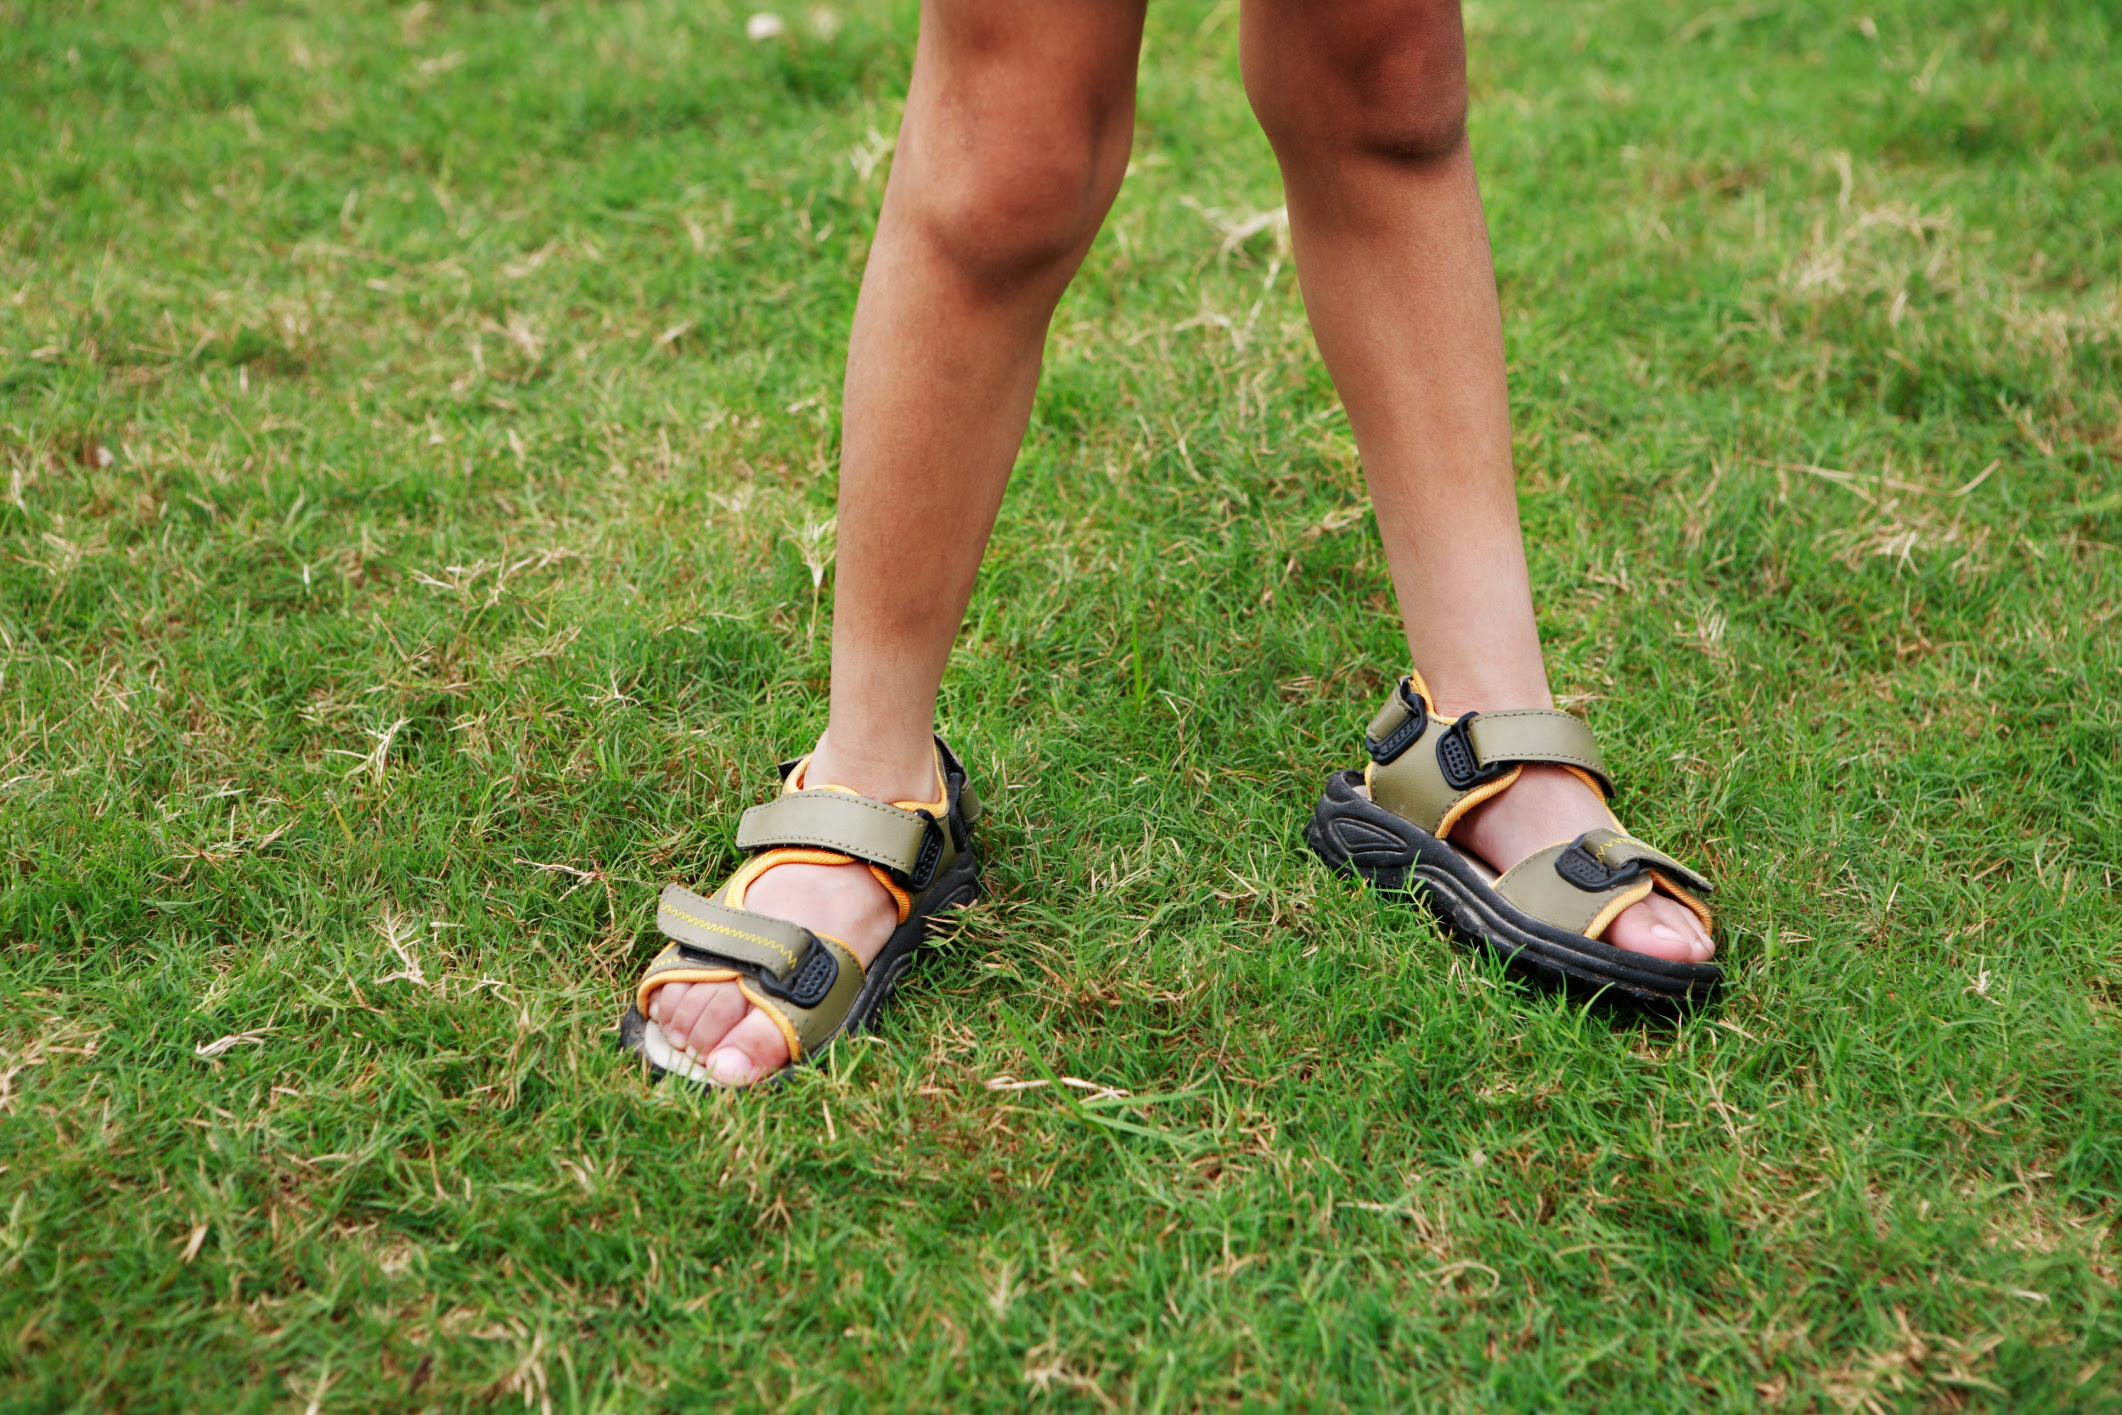 Foot and Leg Discoloration | Healthfully